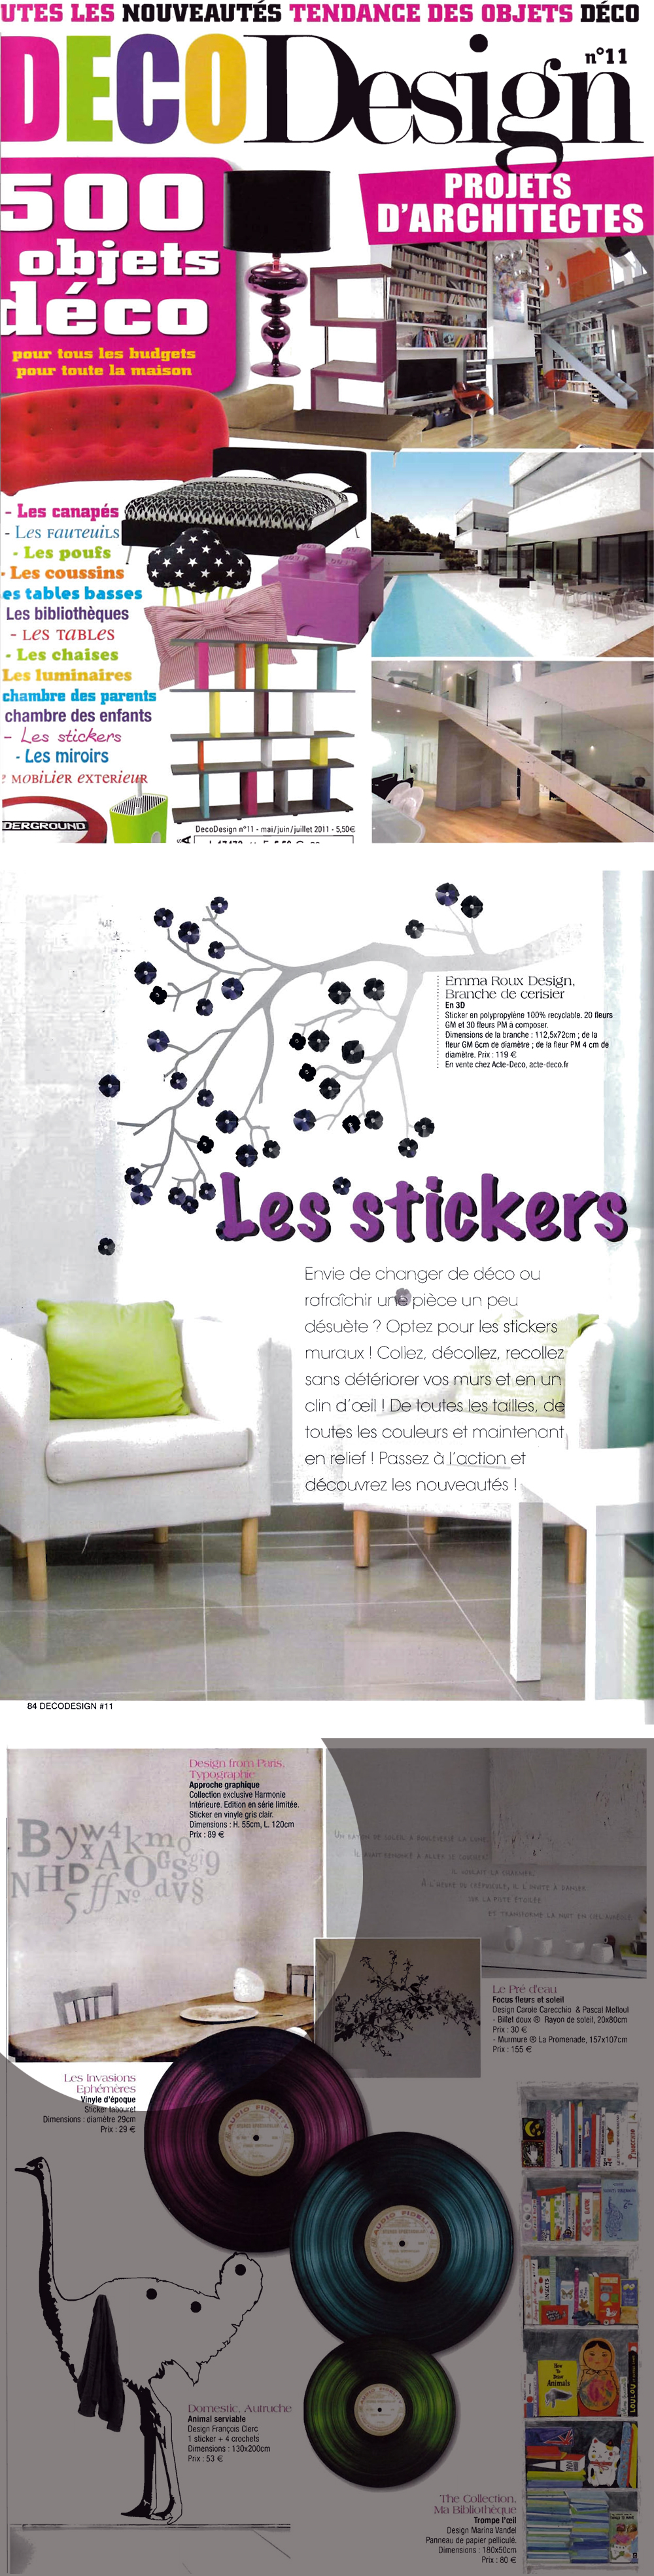 les stickers d harmonie int rieure sont dans le magazine d co design. Black Bedroom Furniture Sets. Home Design Ideas